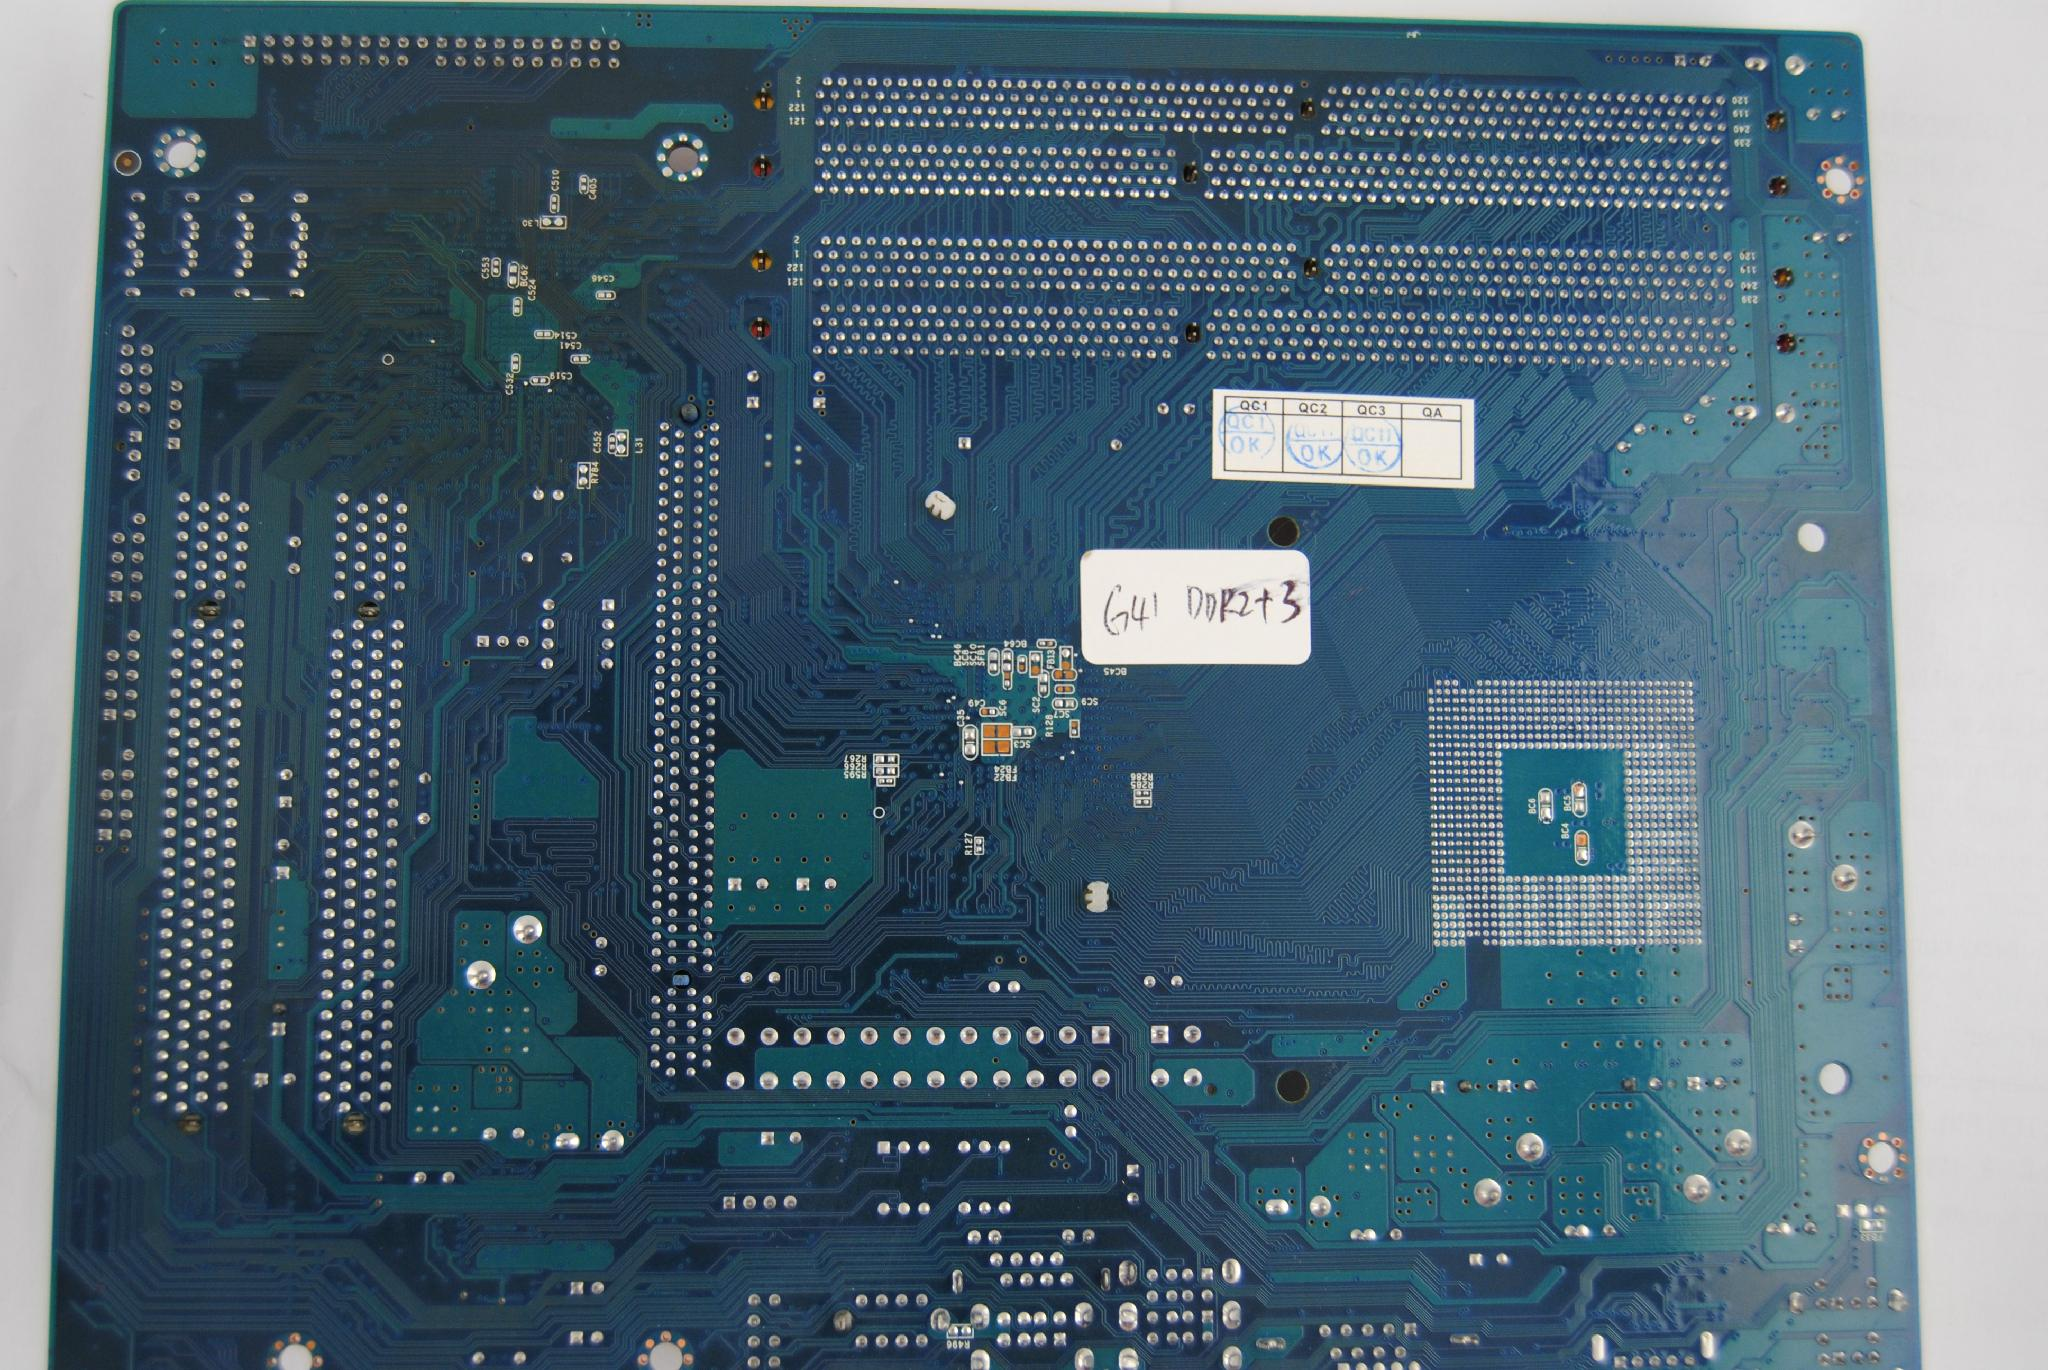 Integrated type dual core 1333mhz 1600mhz lga1150 H81 motherboard 5